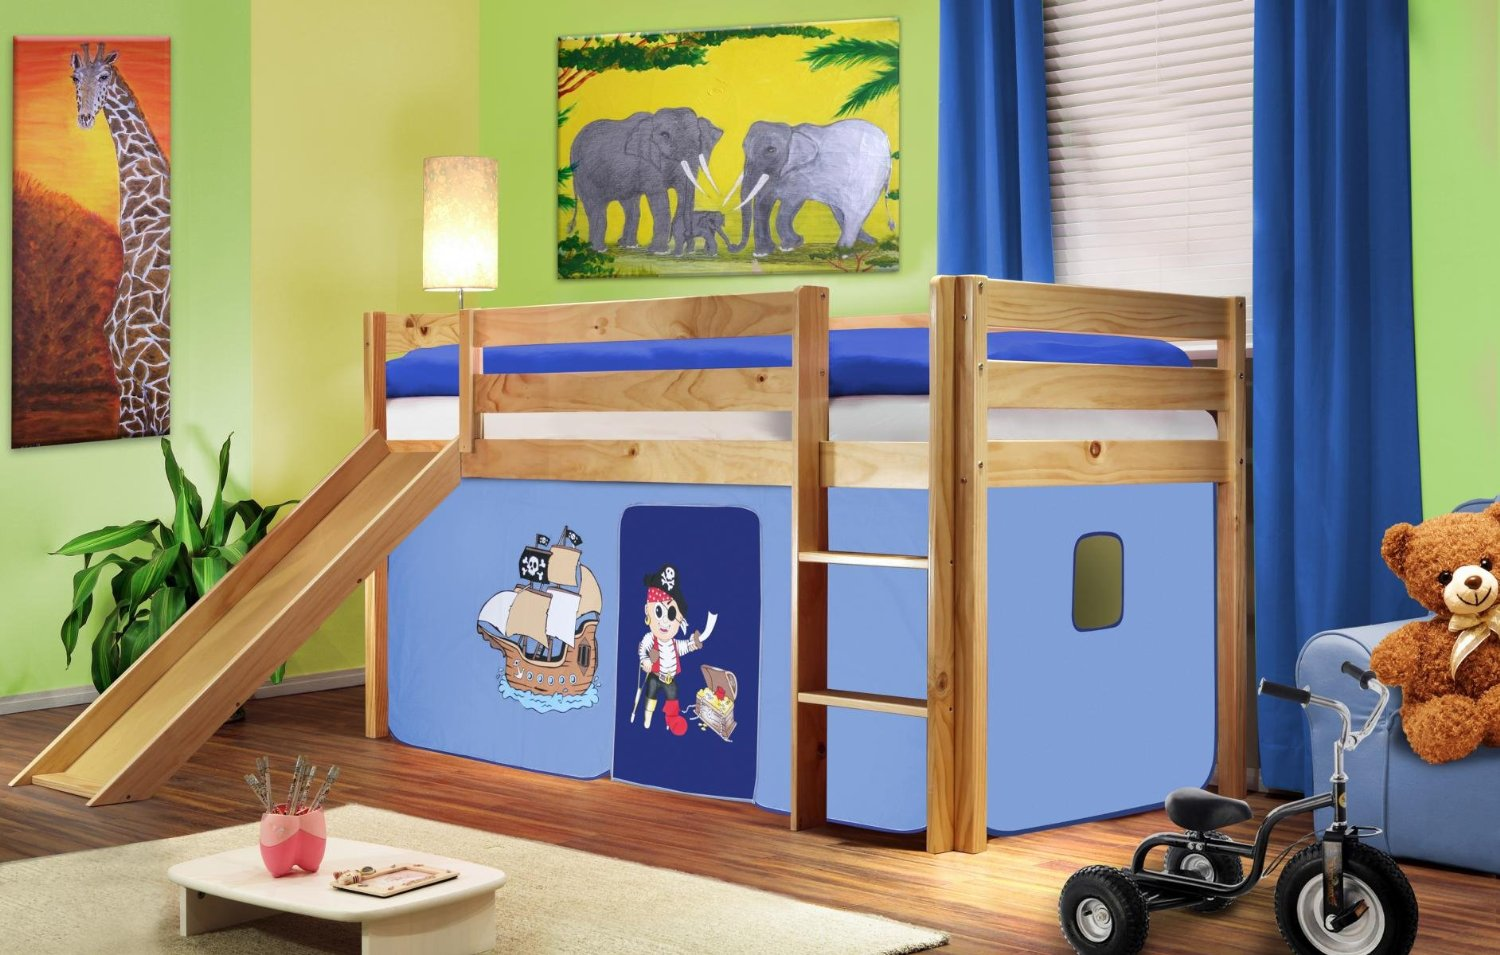 sixbros kinderbett mit rutsche massiv kiefer pirat blau kinderzimmer. Black Bedroom Furniture Sets. Home Design Ideas